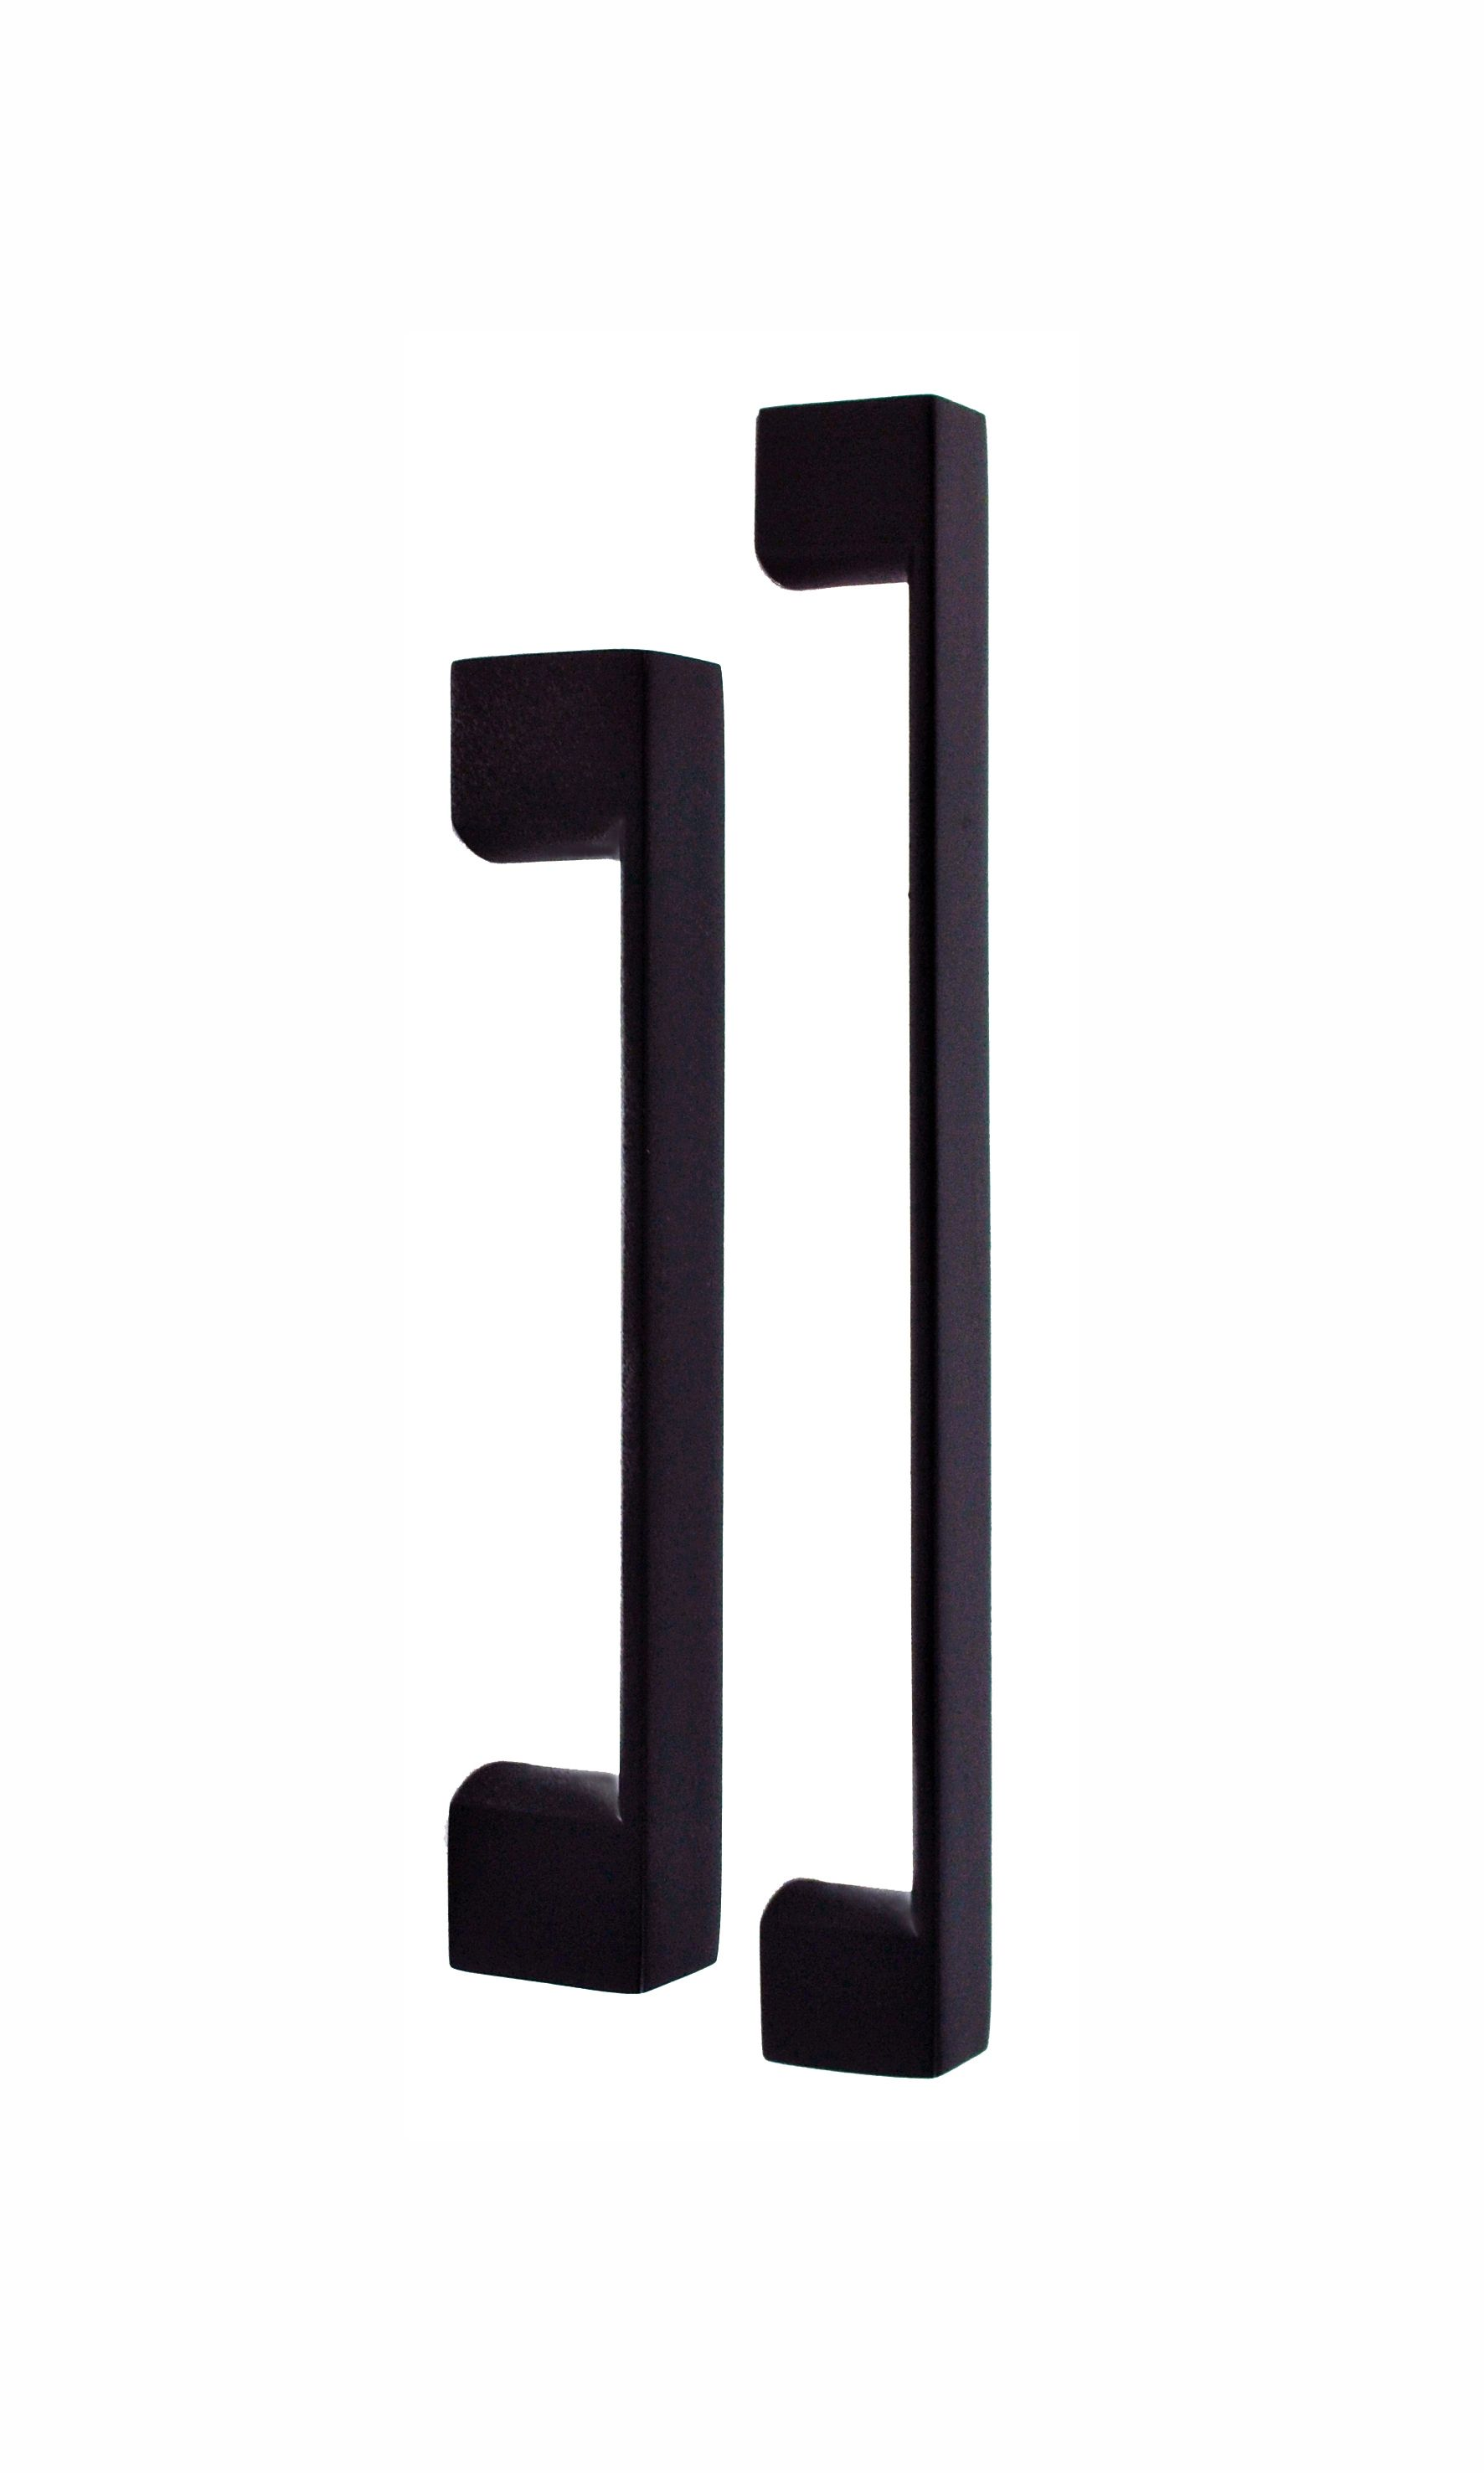 Nidus SQ1 pulls matte black Kitchen door